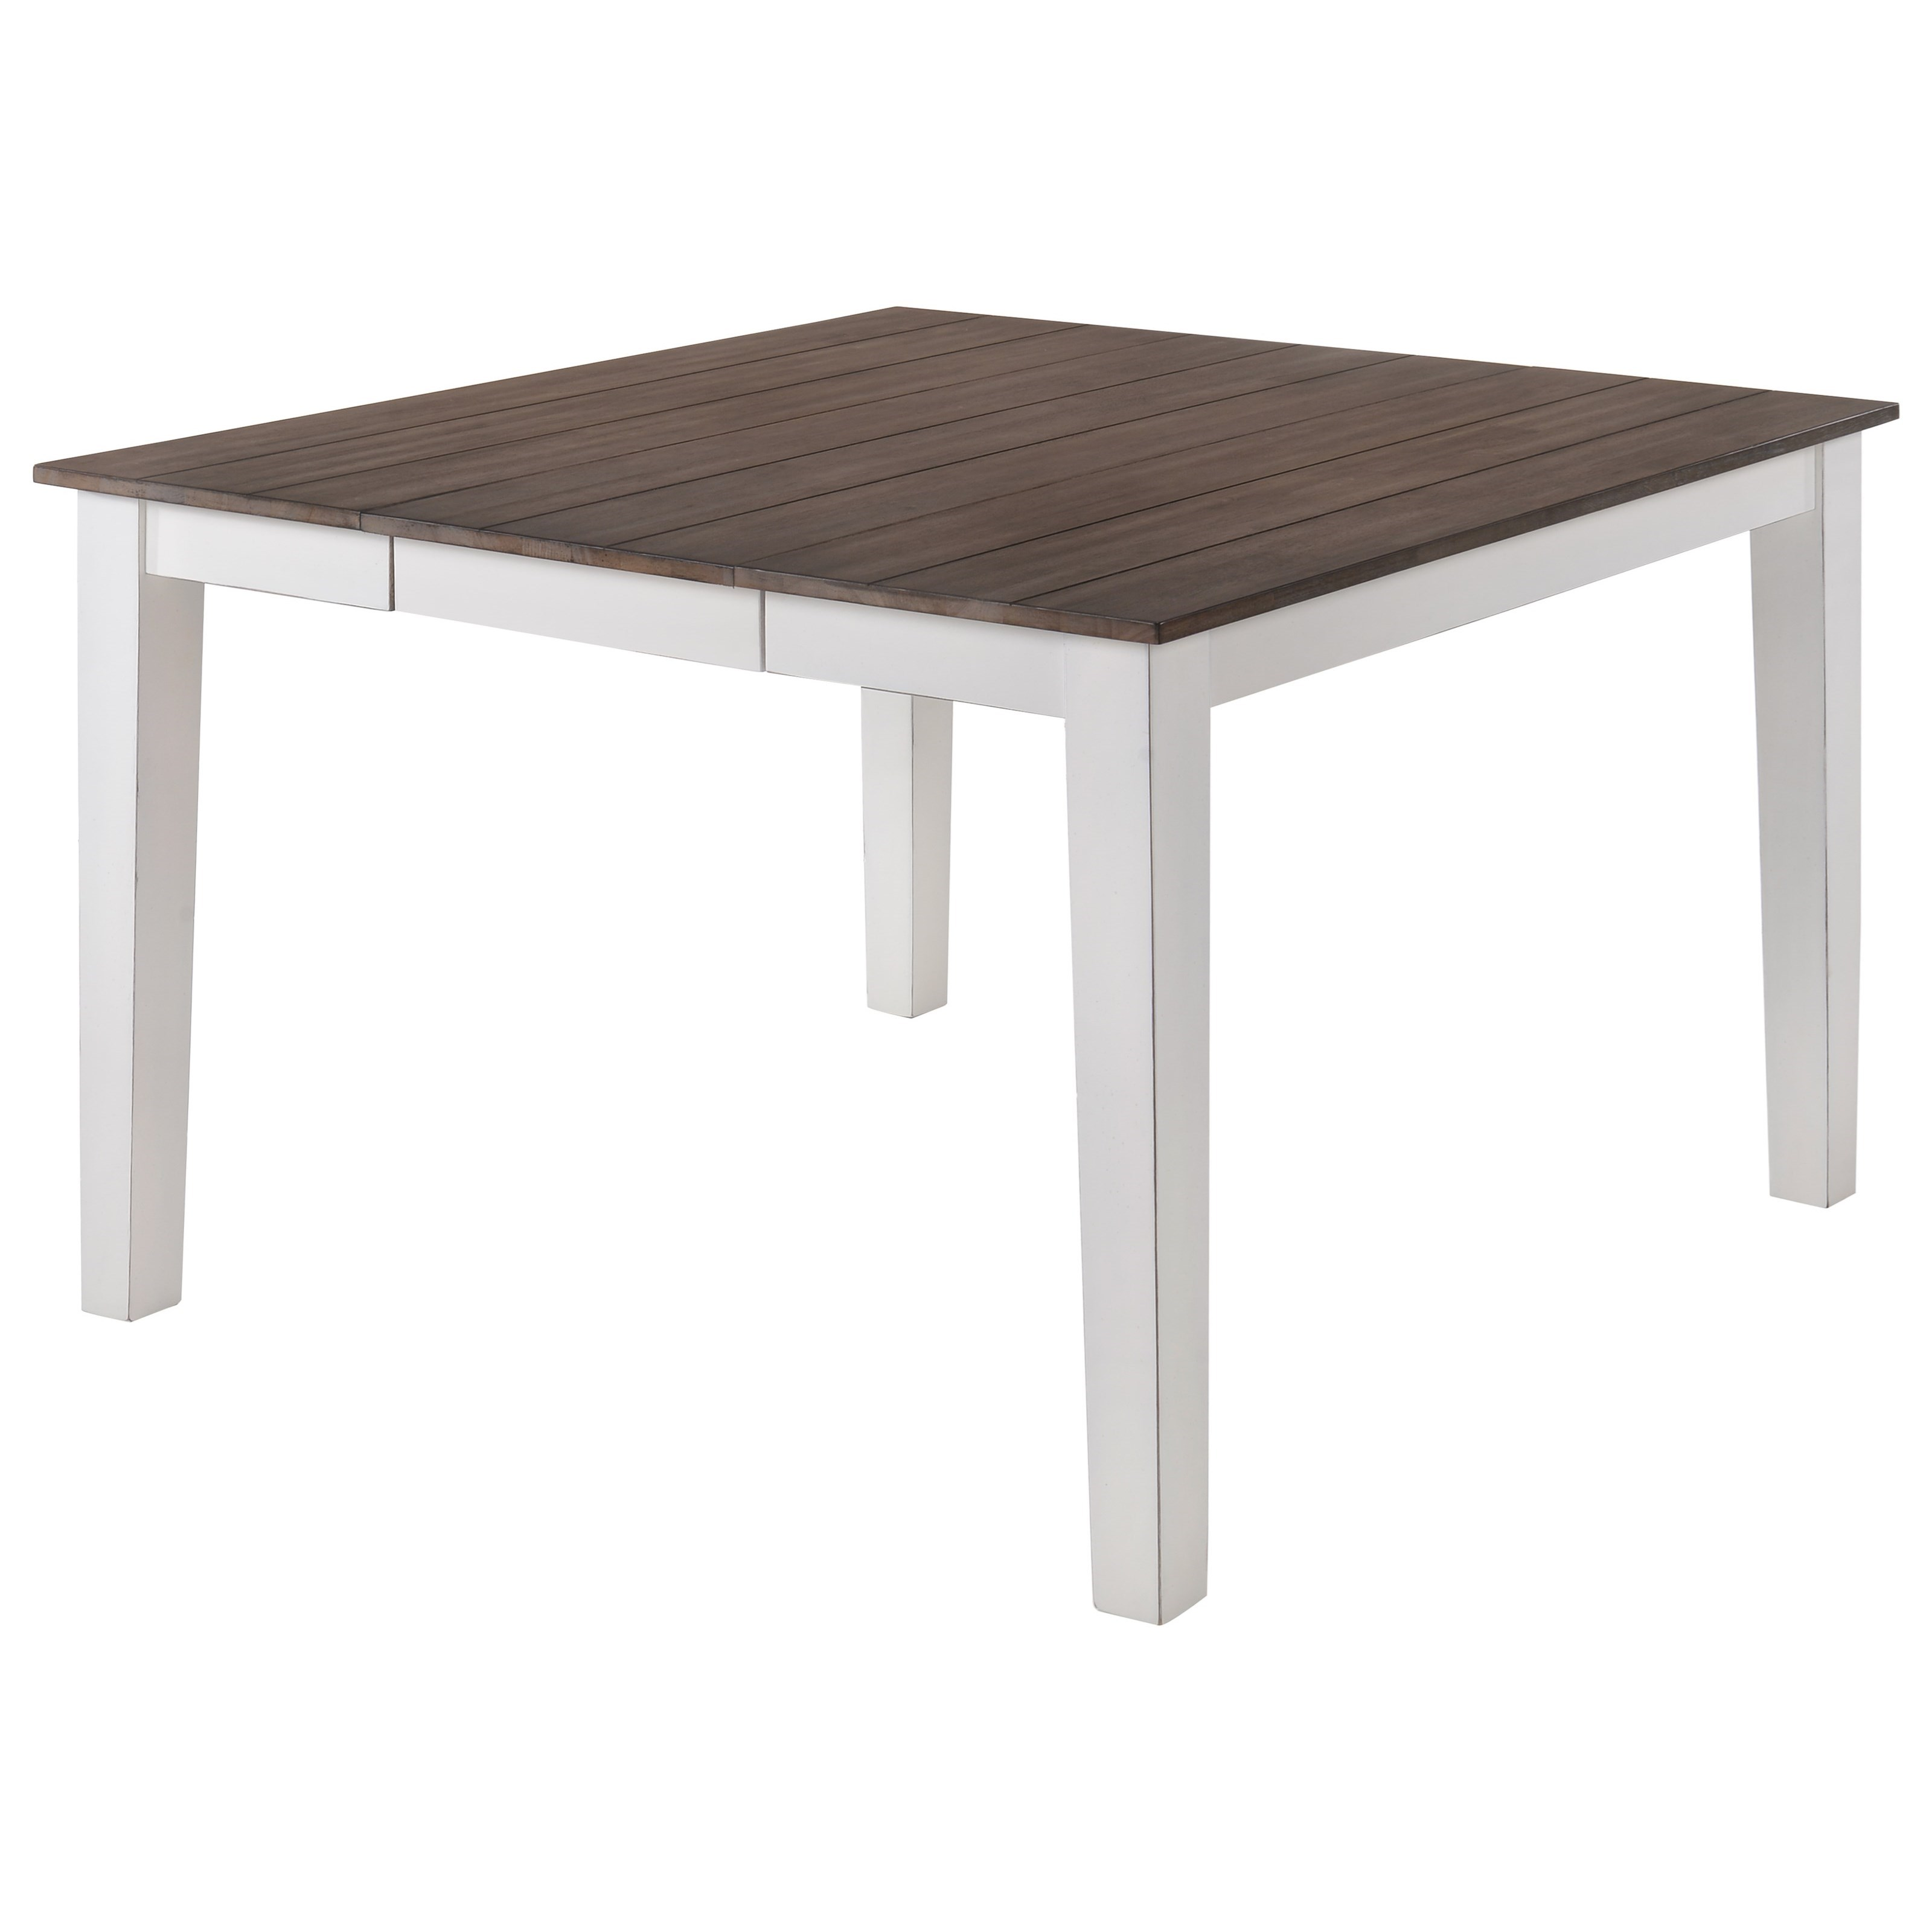 United Furniture Industries 5057 Counter Height Square Dining Table - Item Number: 5057-57